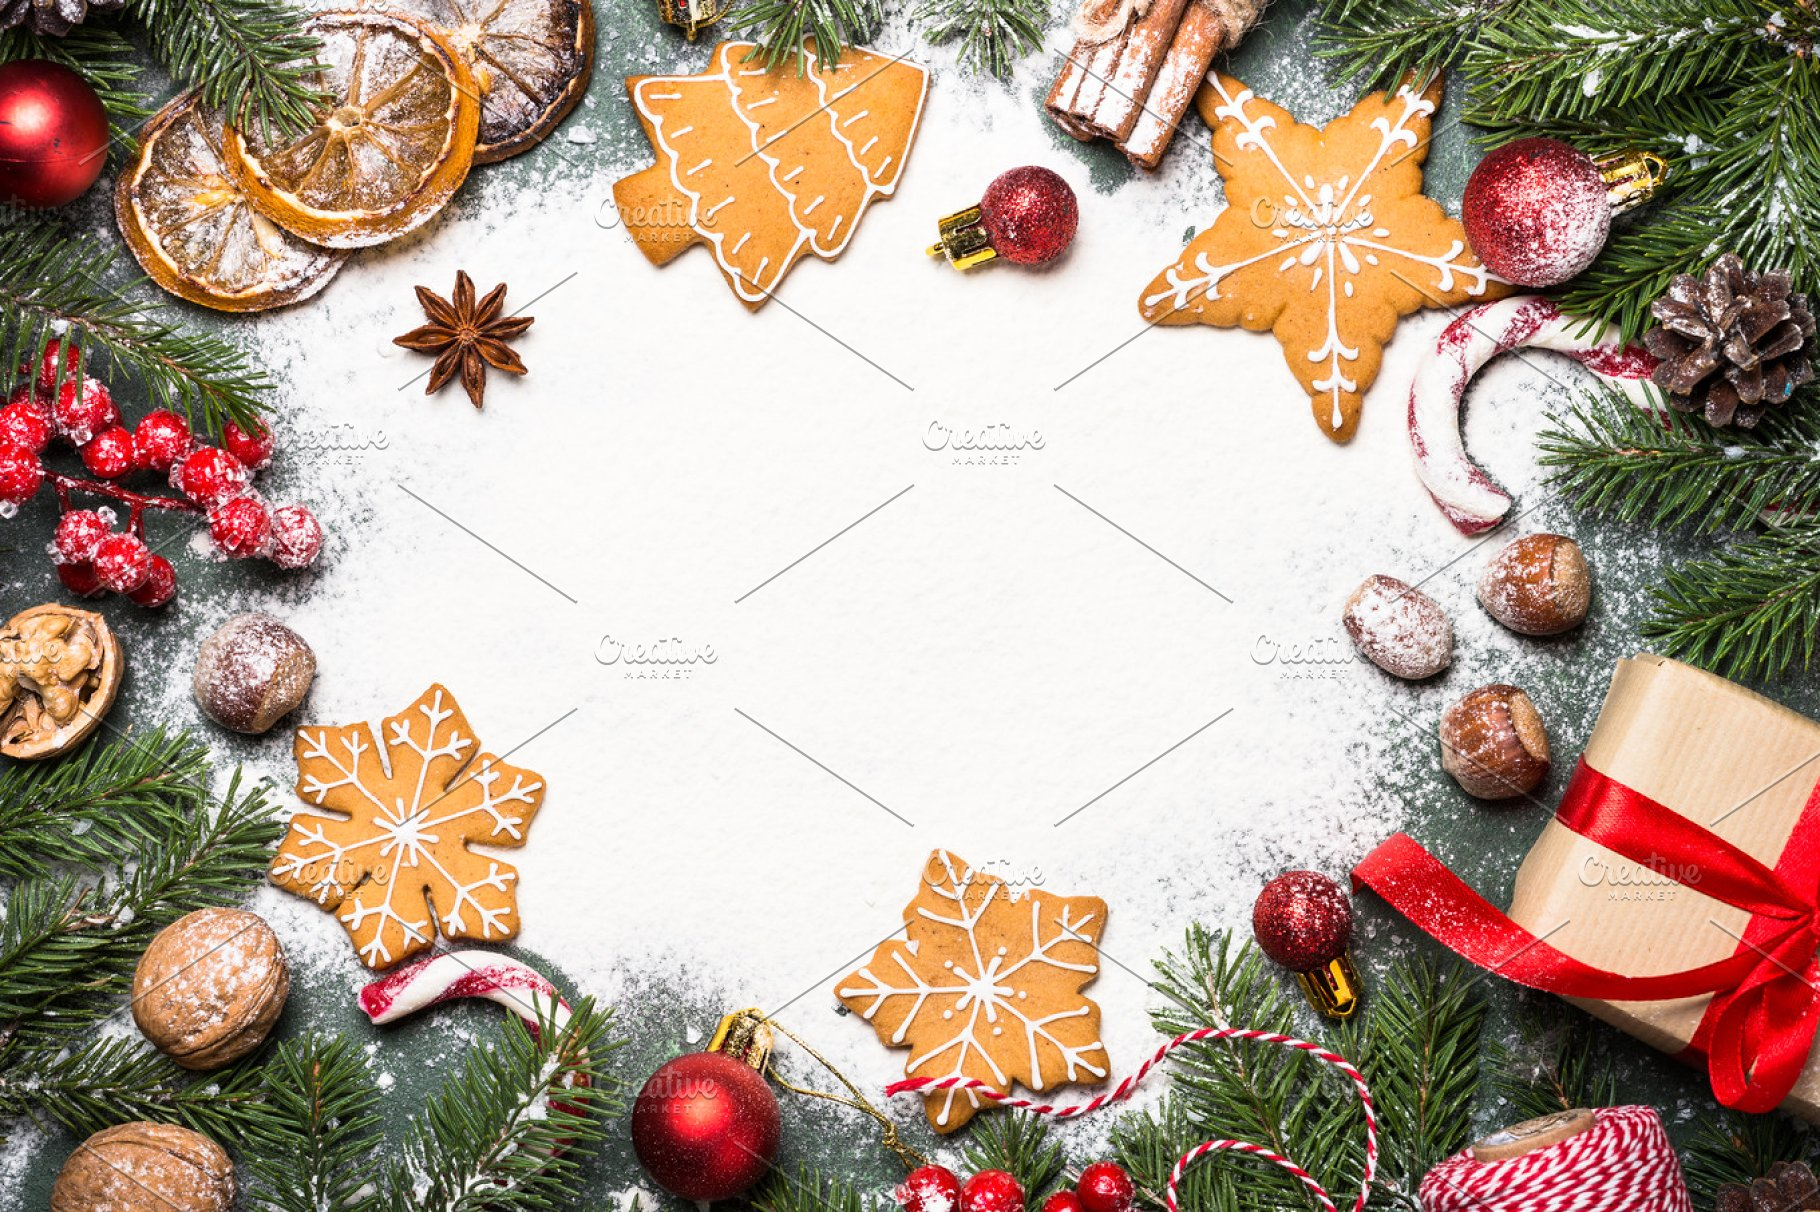 Christmas baking background High Quality Holiday Stock Photos 1820x1212